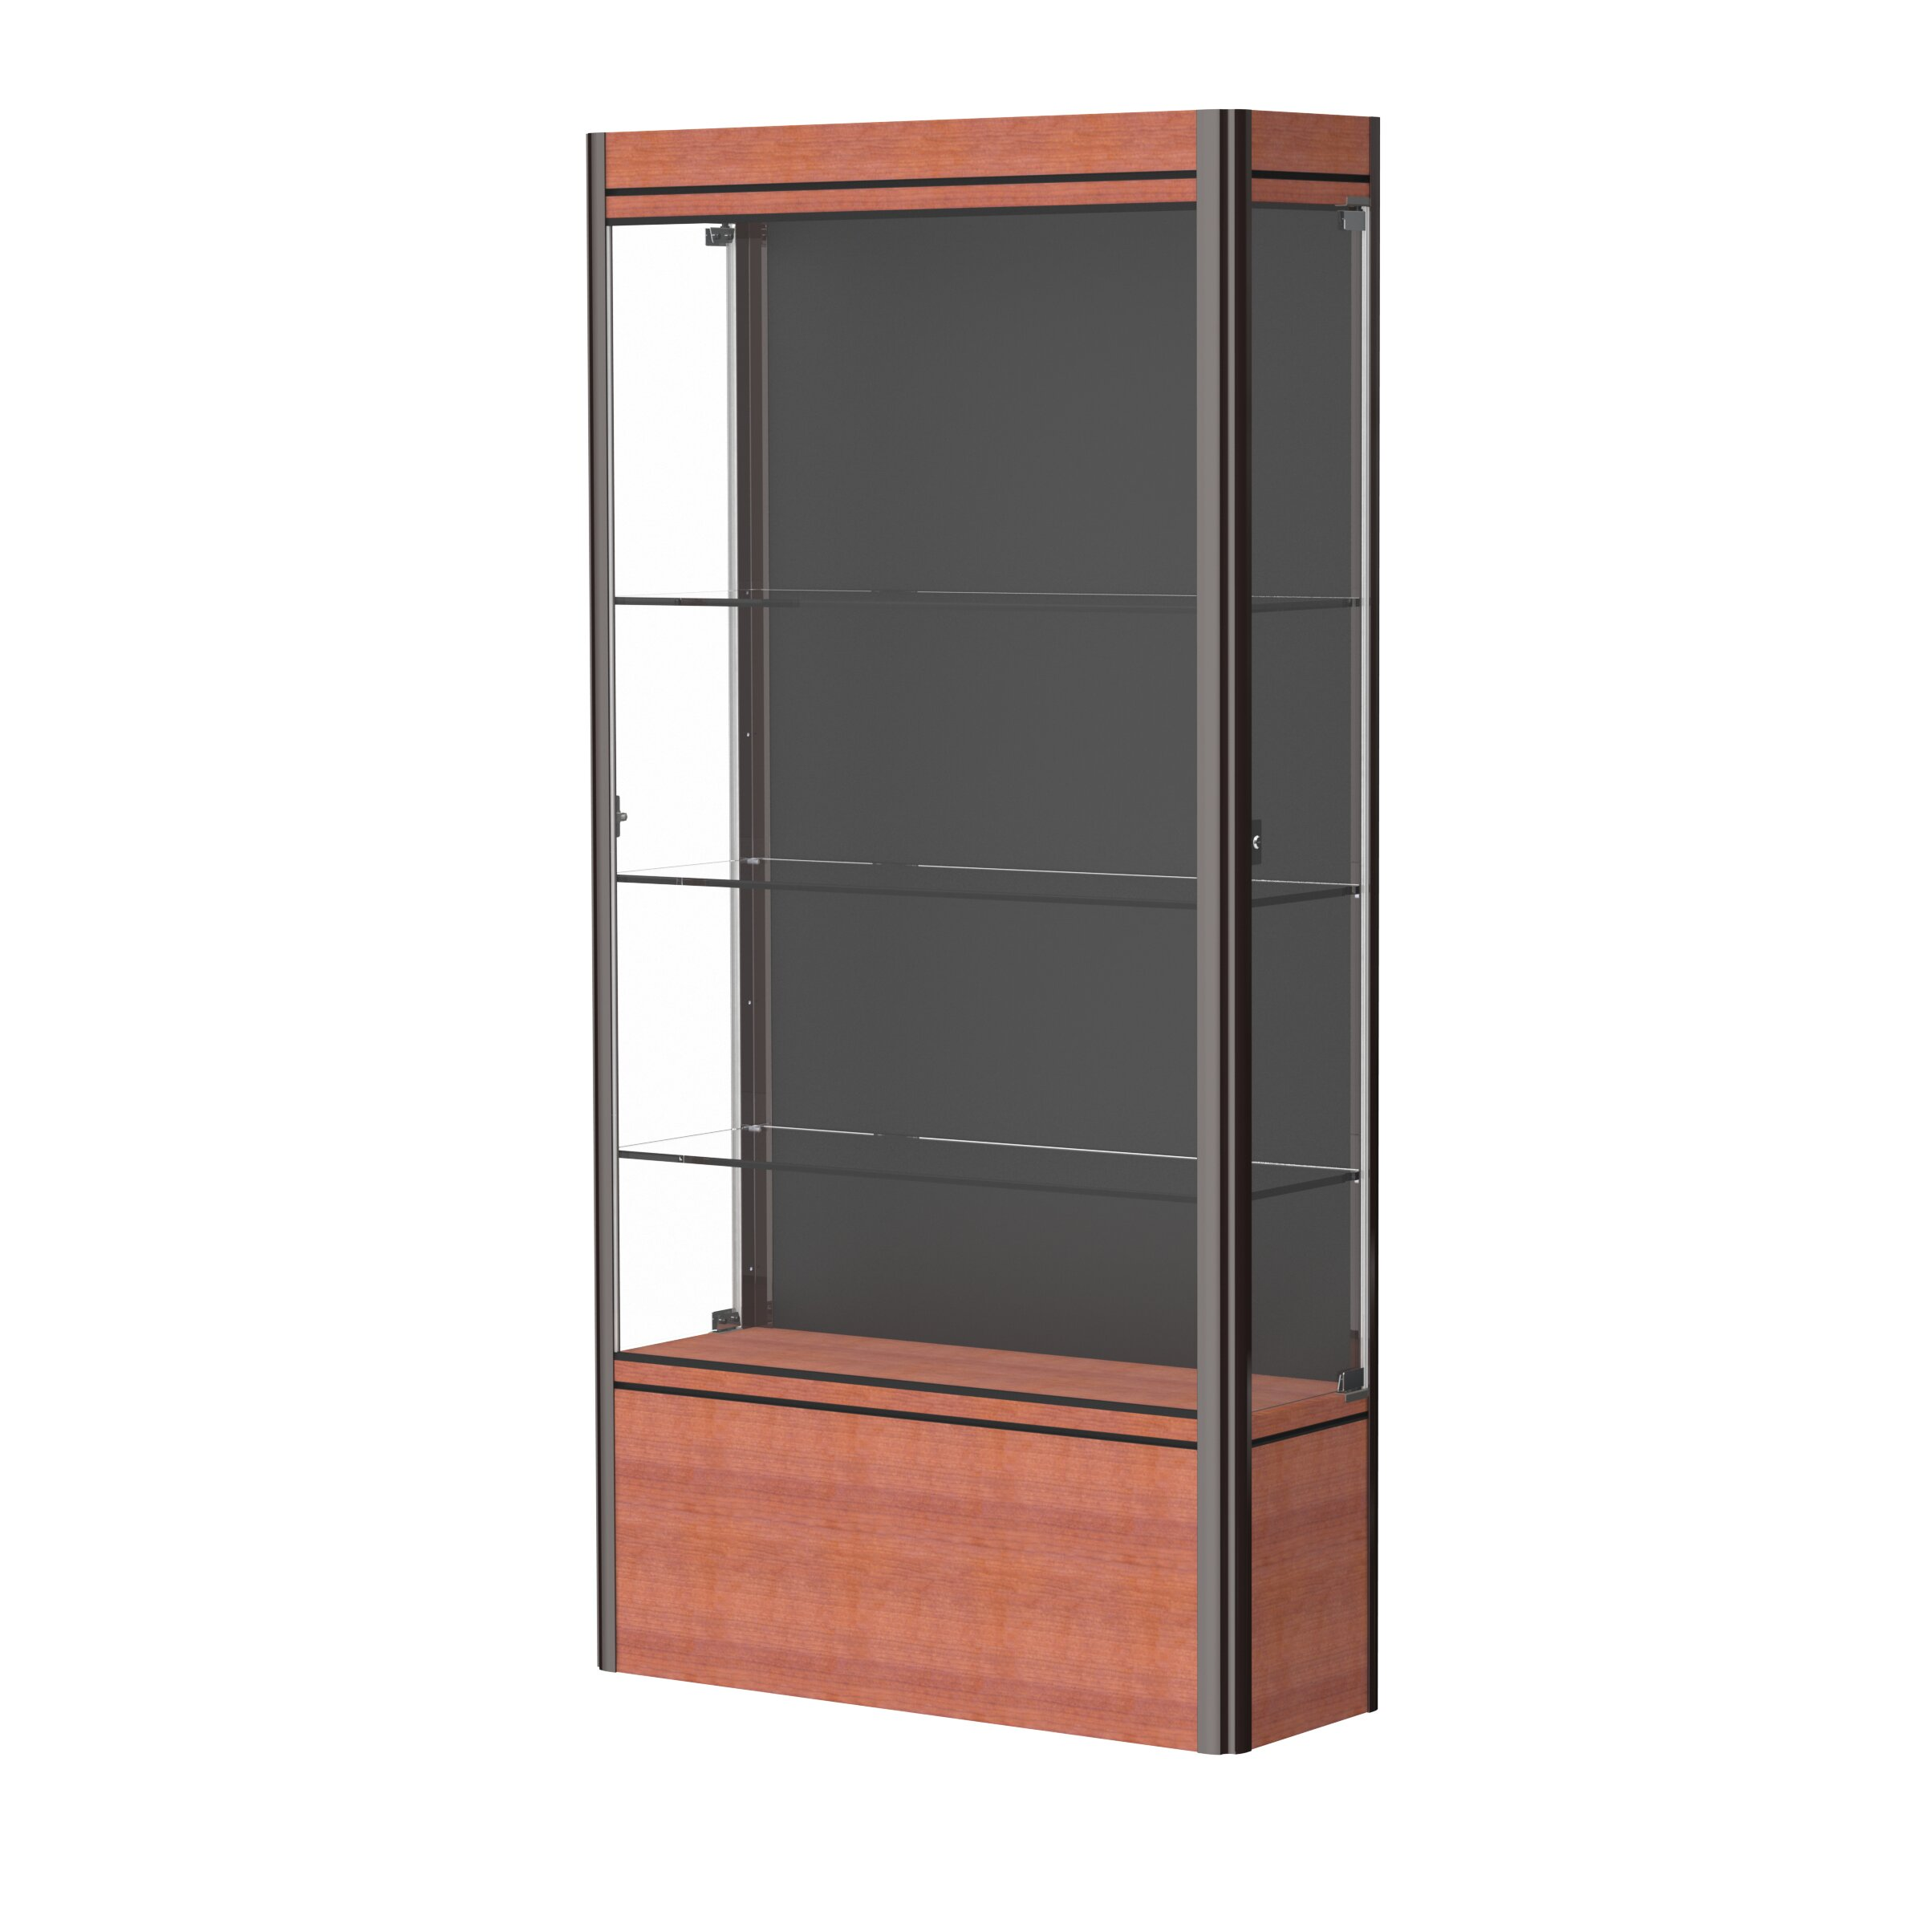 waddell contempo series lighted floor display case wayfair. Black Bedroom Furniture Sets. Home Design Ideas